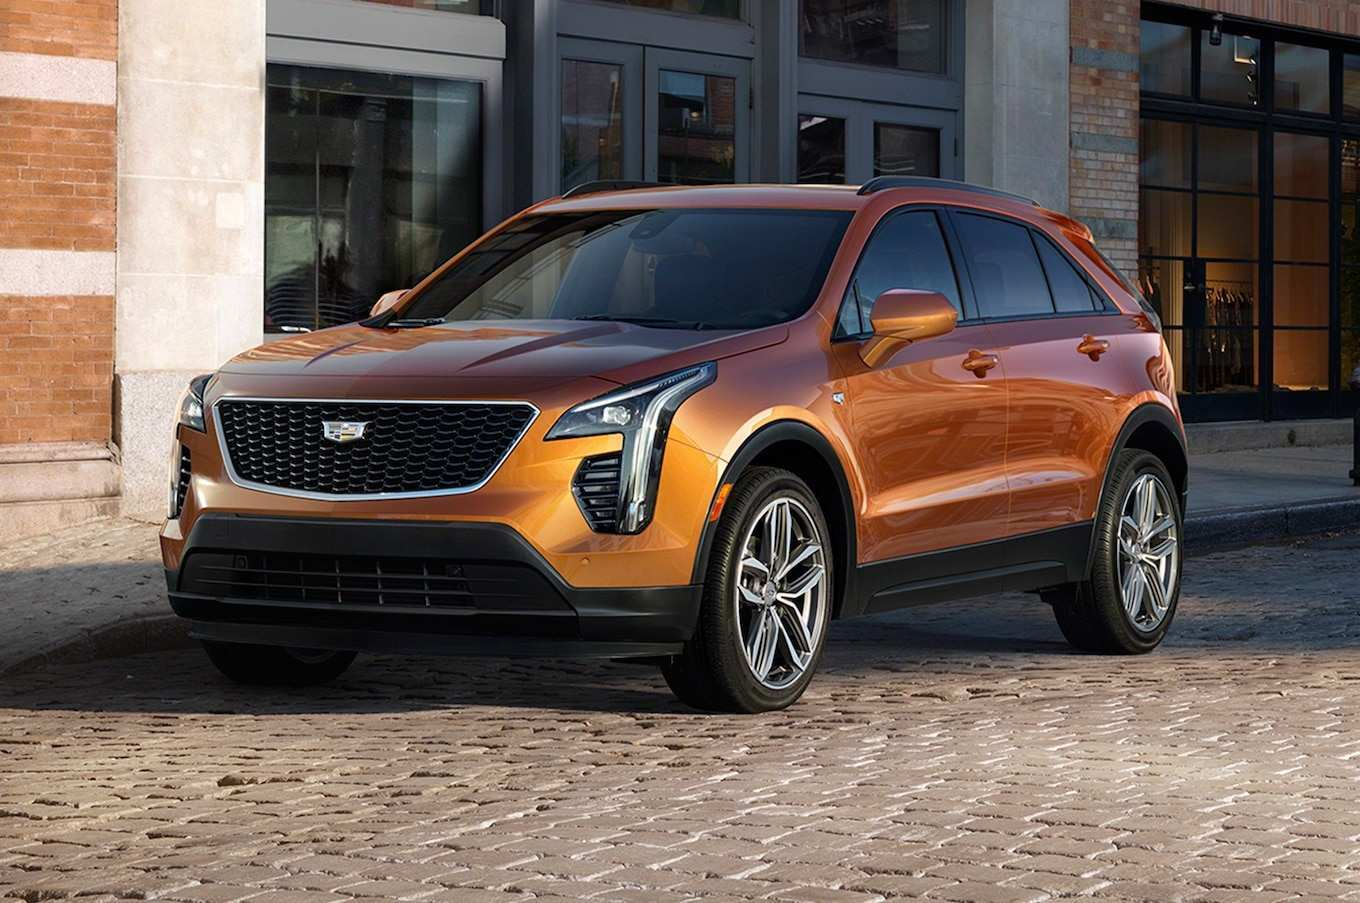 64 The New Cadillac Xt4 2019 Images Engine Review by New Cadillac Xt4 2019 Images Engine